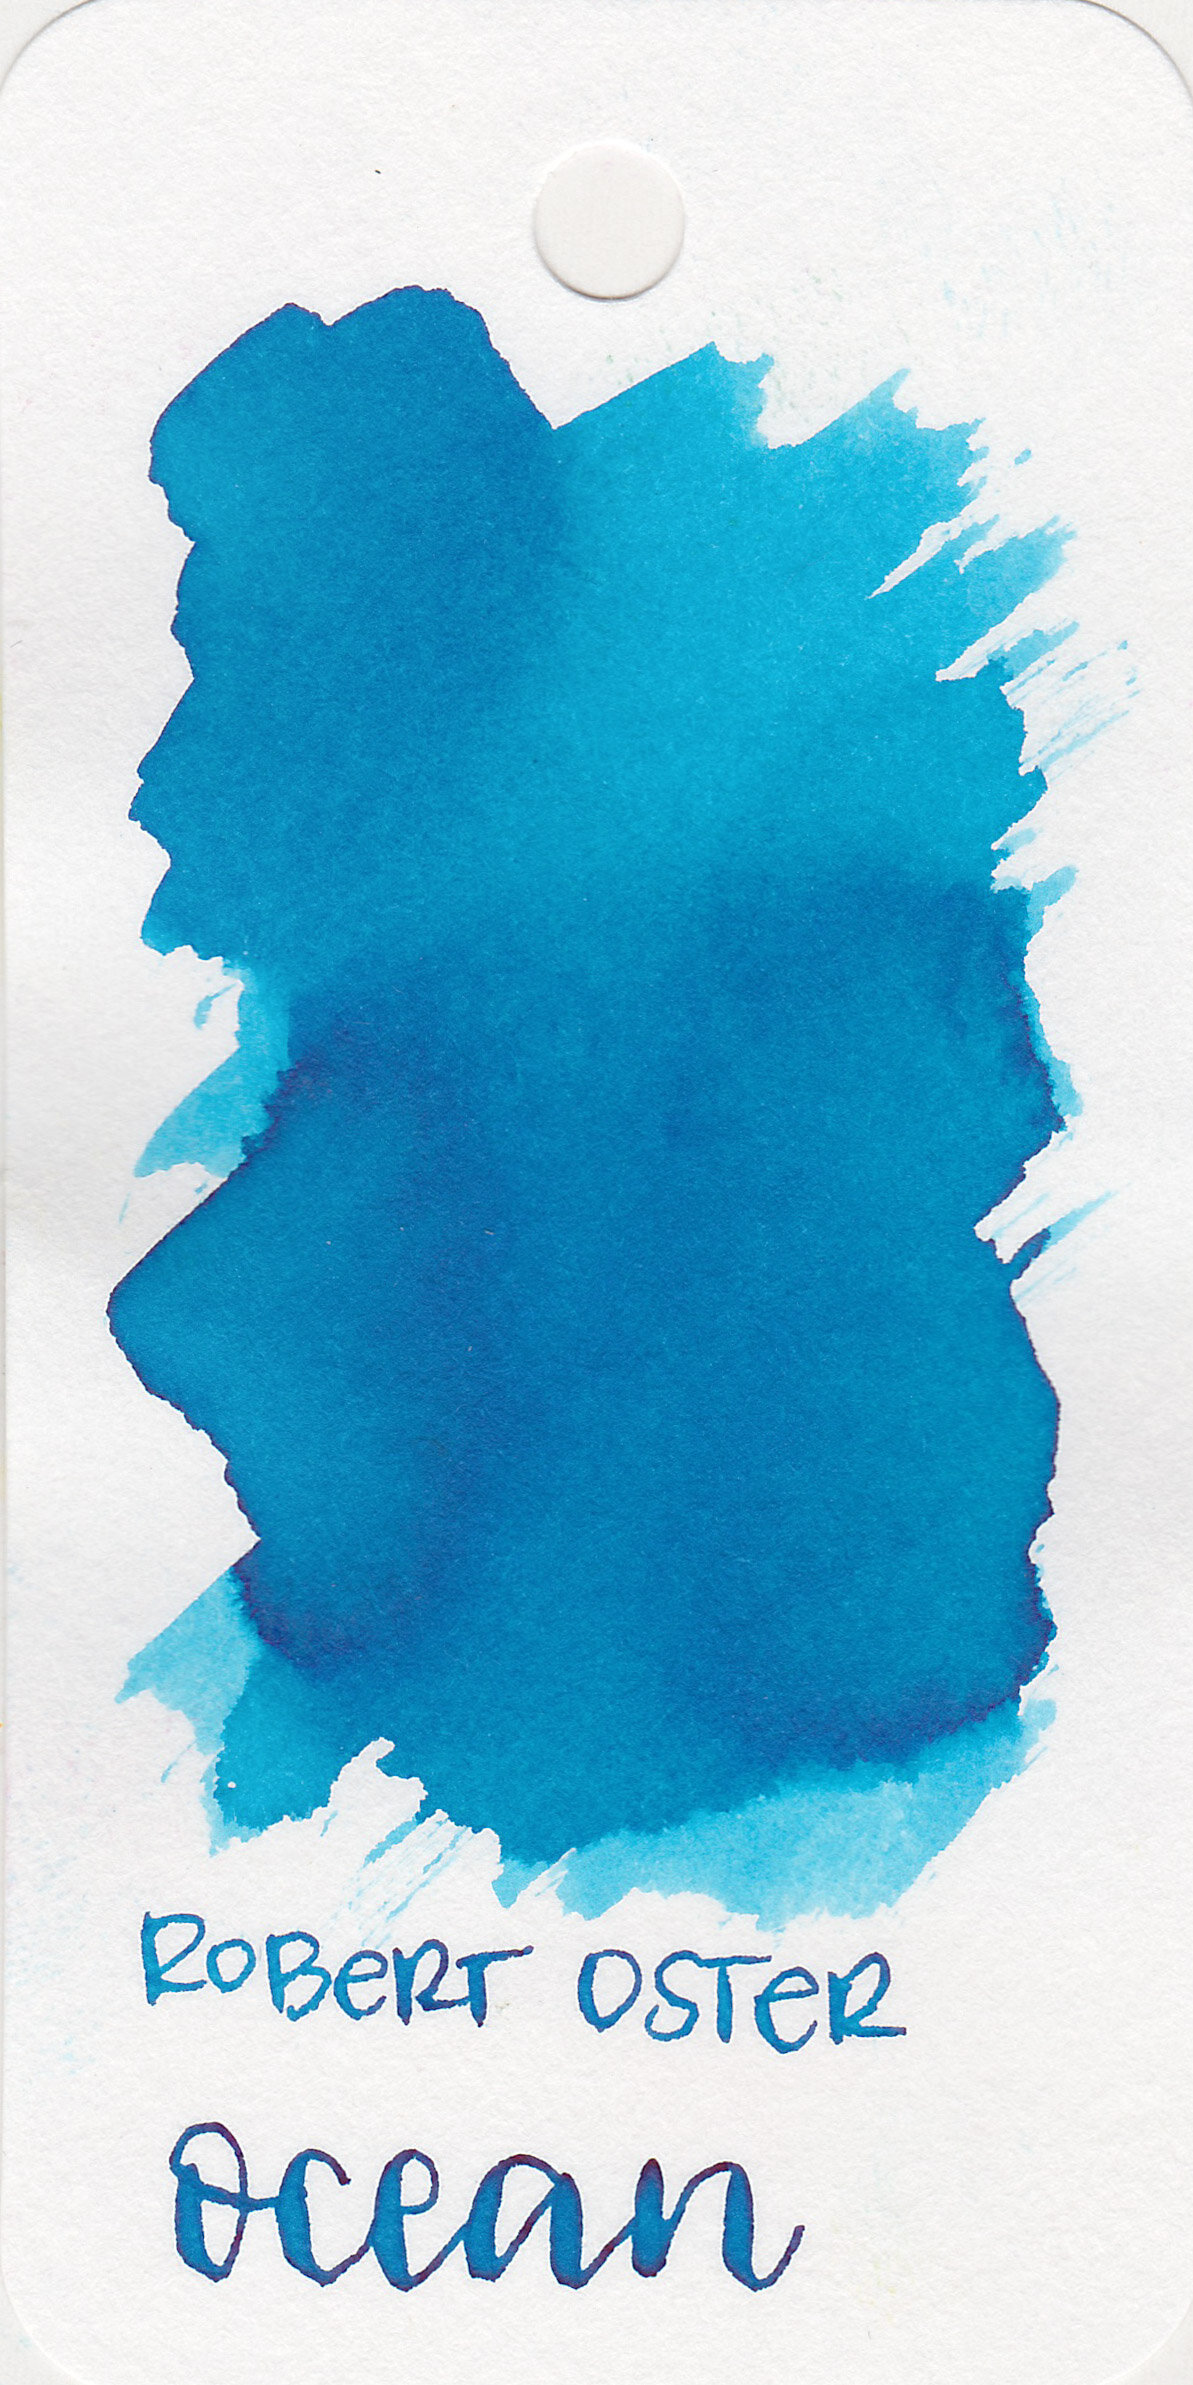 The color: - Ocean is a light turquoise blue.